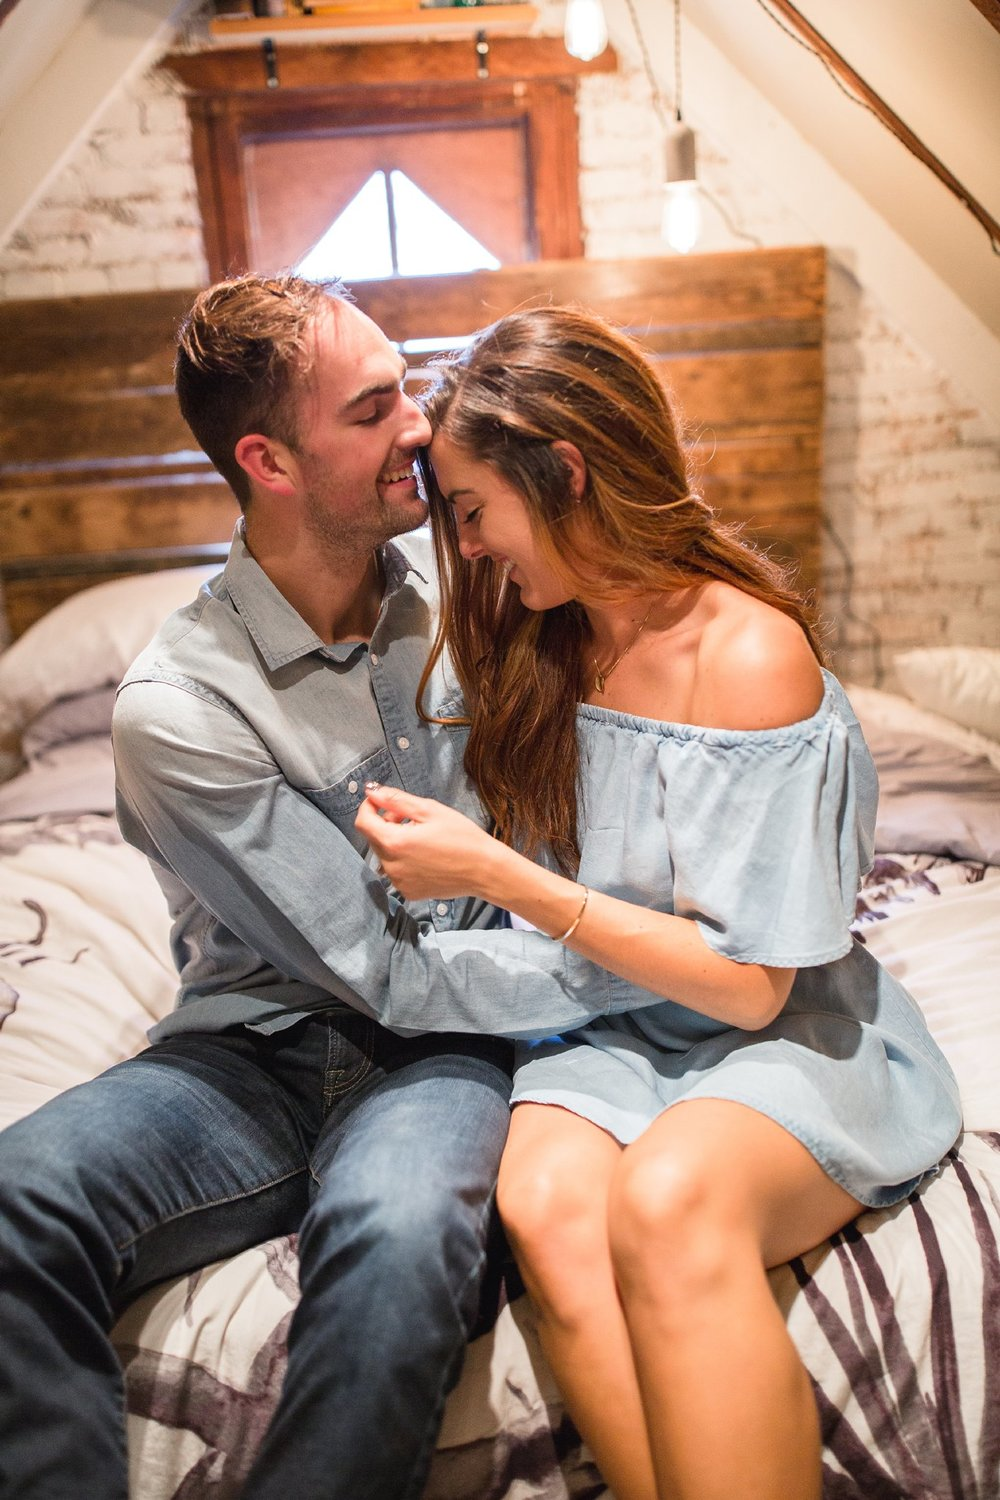 Indoor-Intimate-Engagement-Session22.jpg